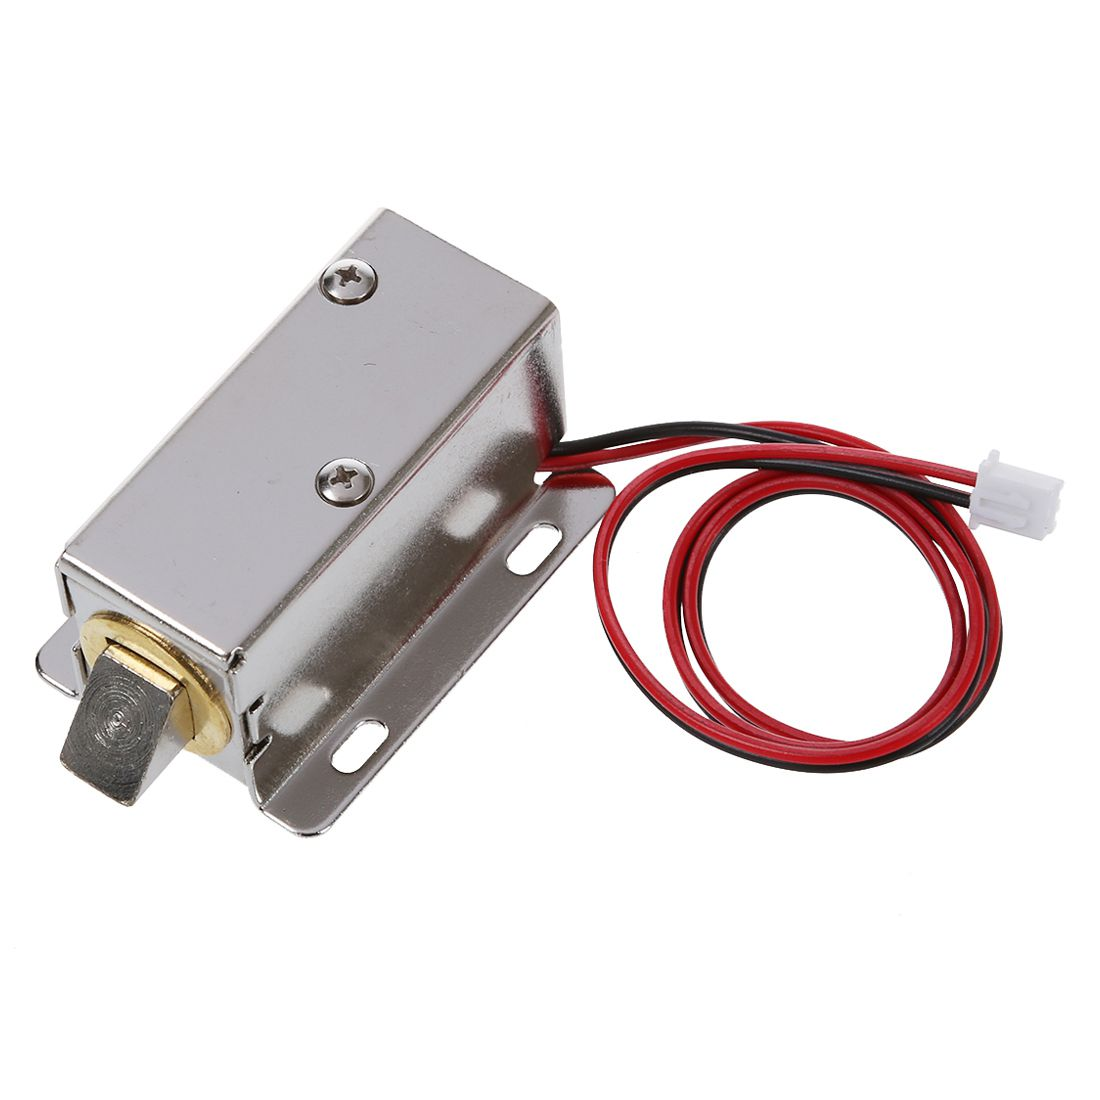 CSS 0837L DC 12V 8W Open Frame Type Solenoid for Electric Door Lock